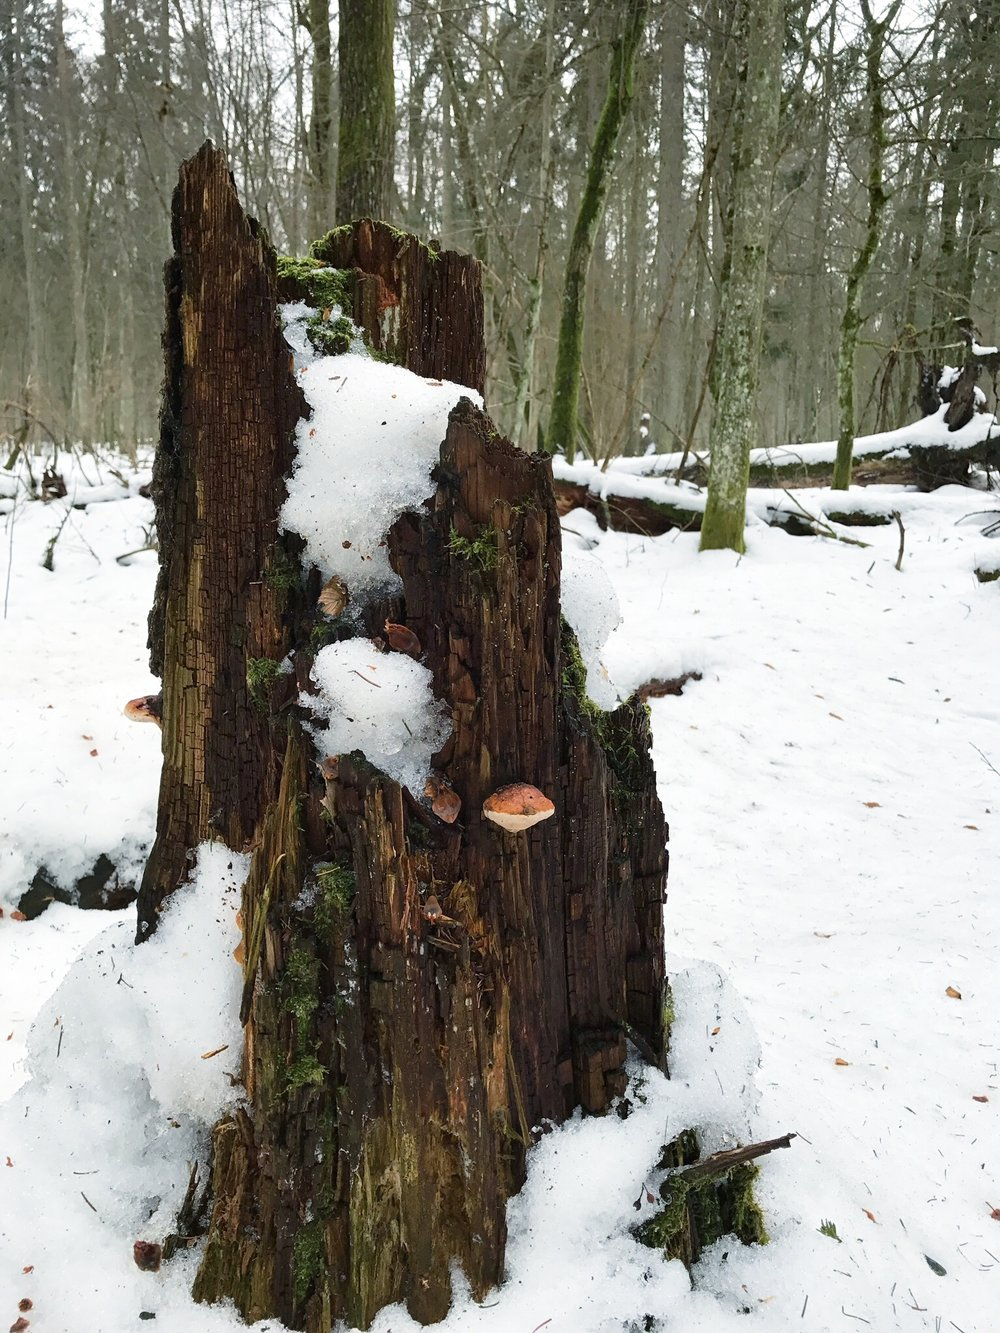 sump-and-fungus-bialowieza-forest.jpg